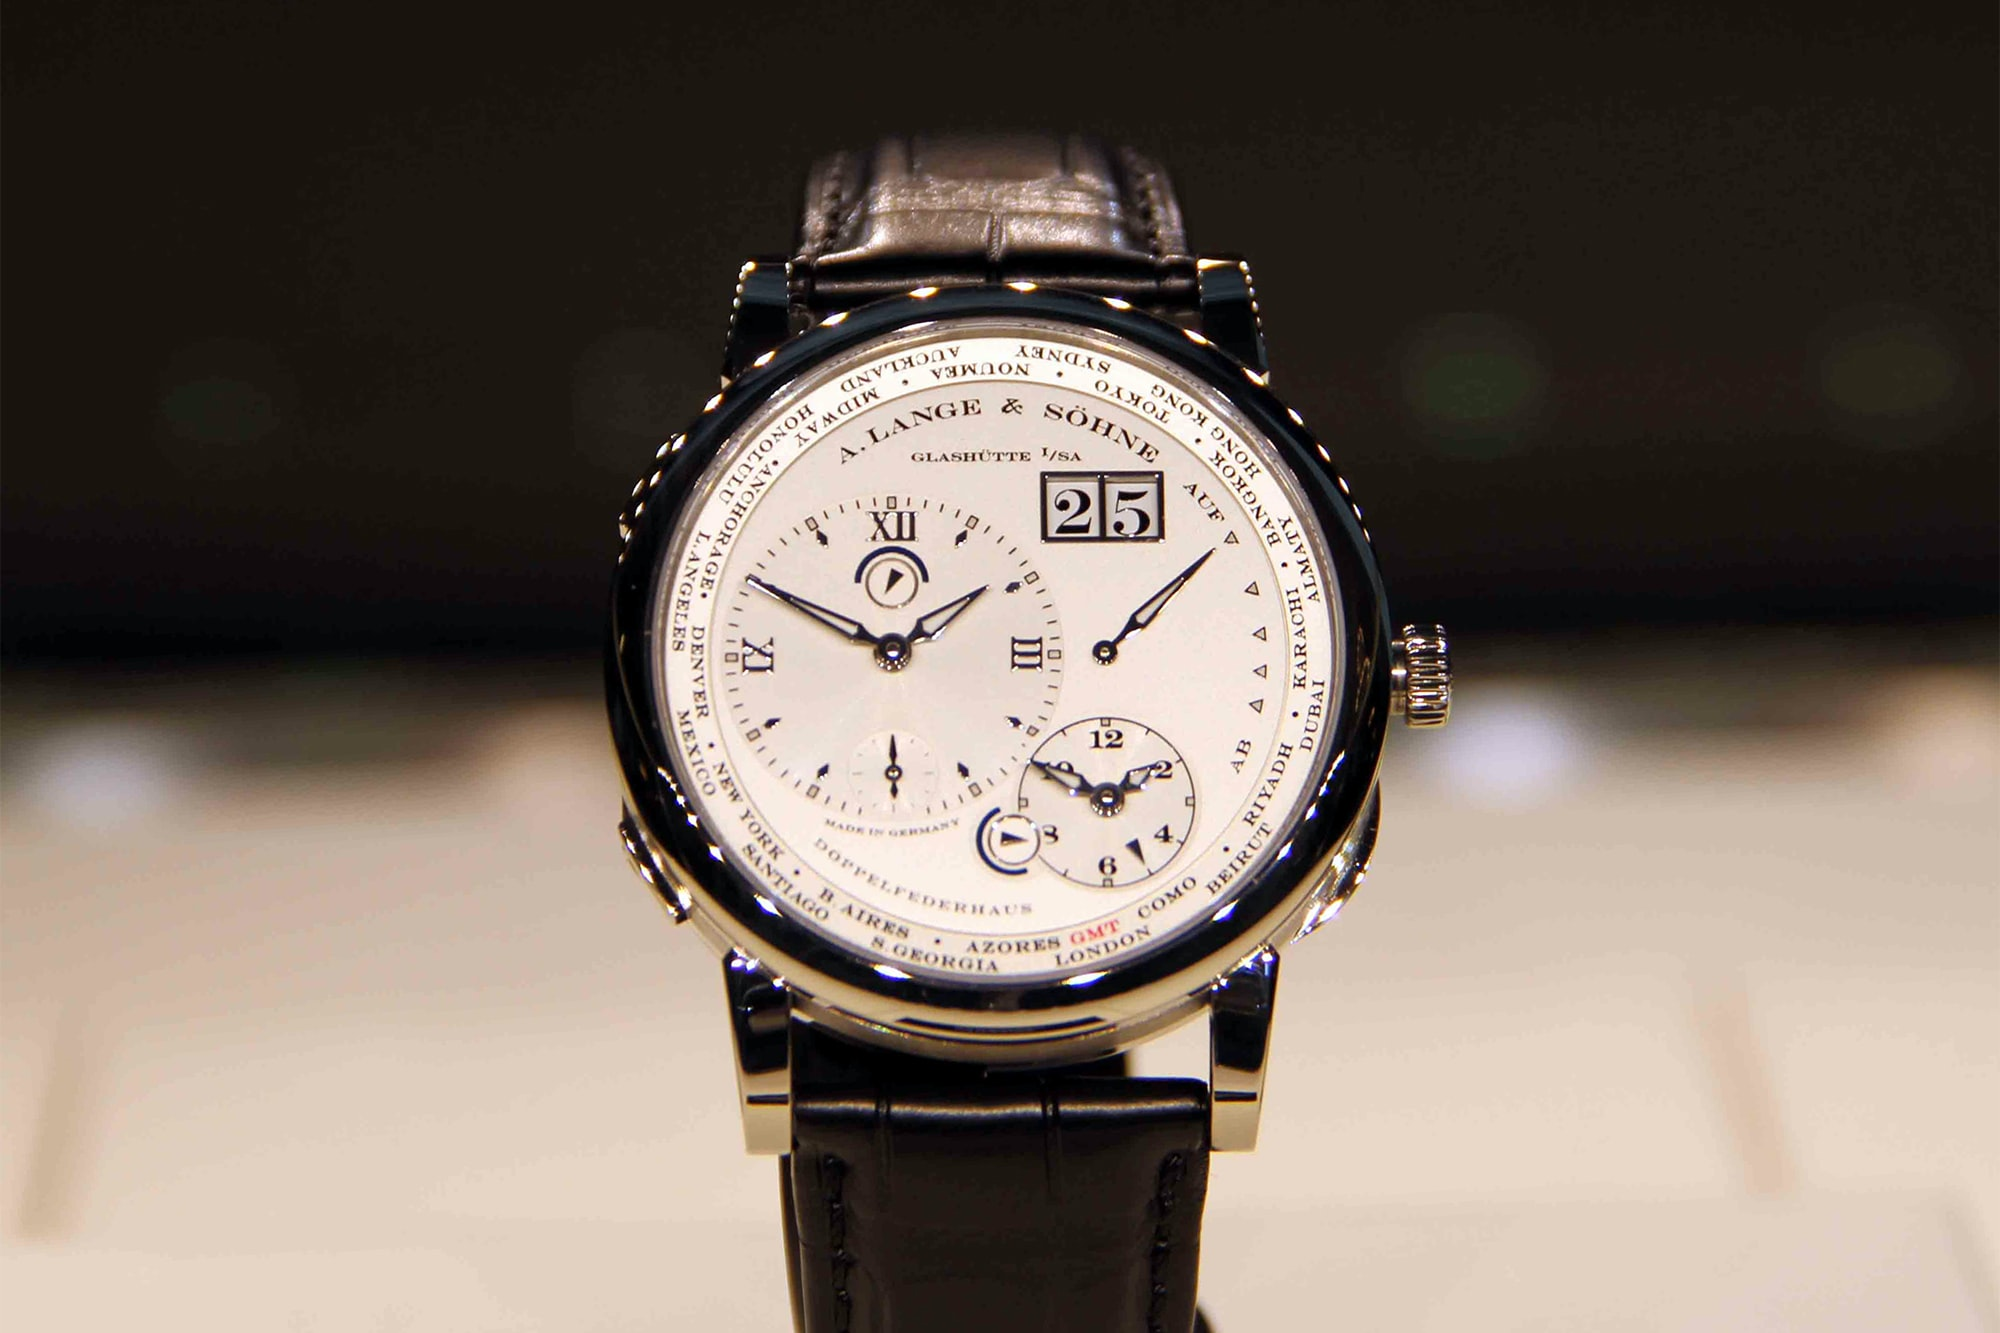 """A. Lange & Söhne Lange 1 Time Zone presented to the """"Best of Show by the Jury."""" Photo Report: Watch And Car Spotting At The 2016 Concorso d'Eleganza Villa d'Este With A. Lange & Söhne Photo Report: Watch And Car Spotting At The 2016 Concorso d'Eleganza Villa d'Este With A. Lange & Söhne aaaa"""